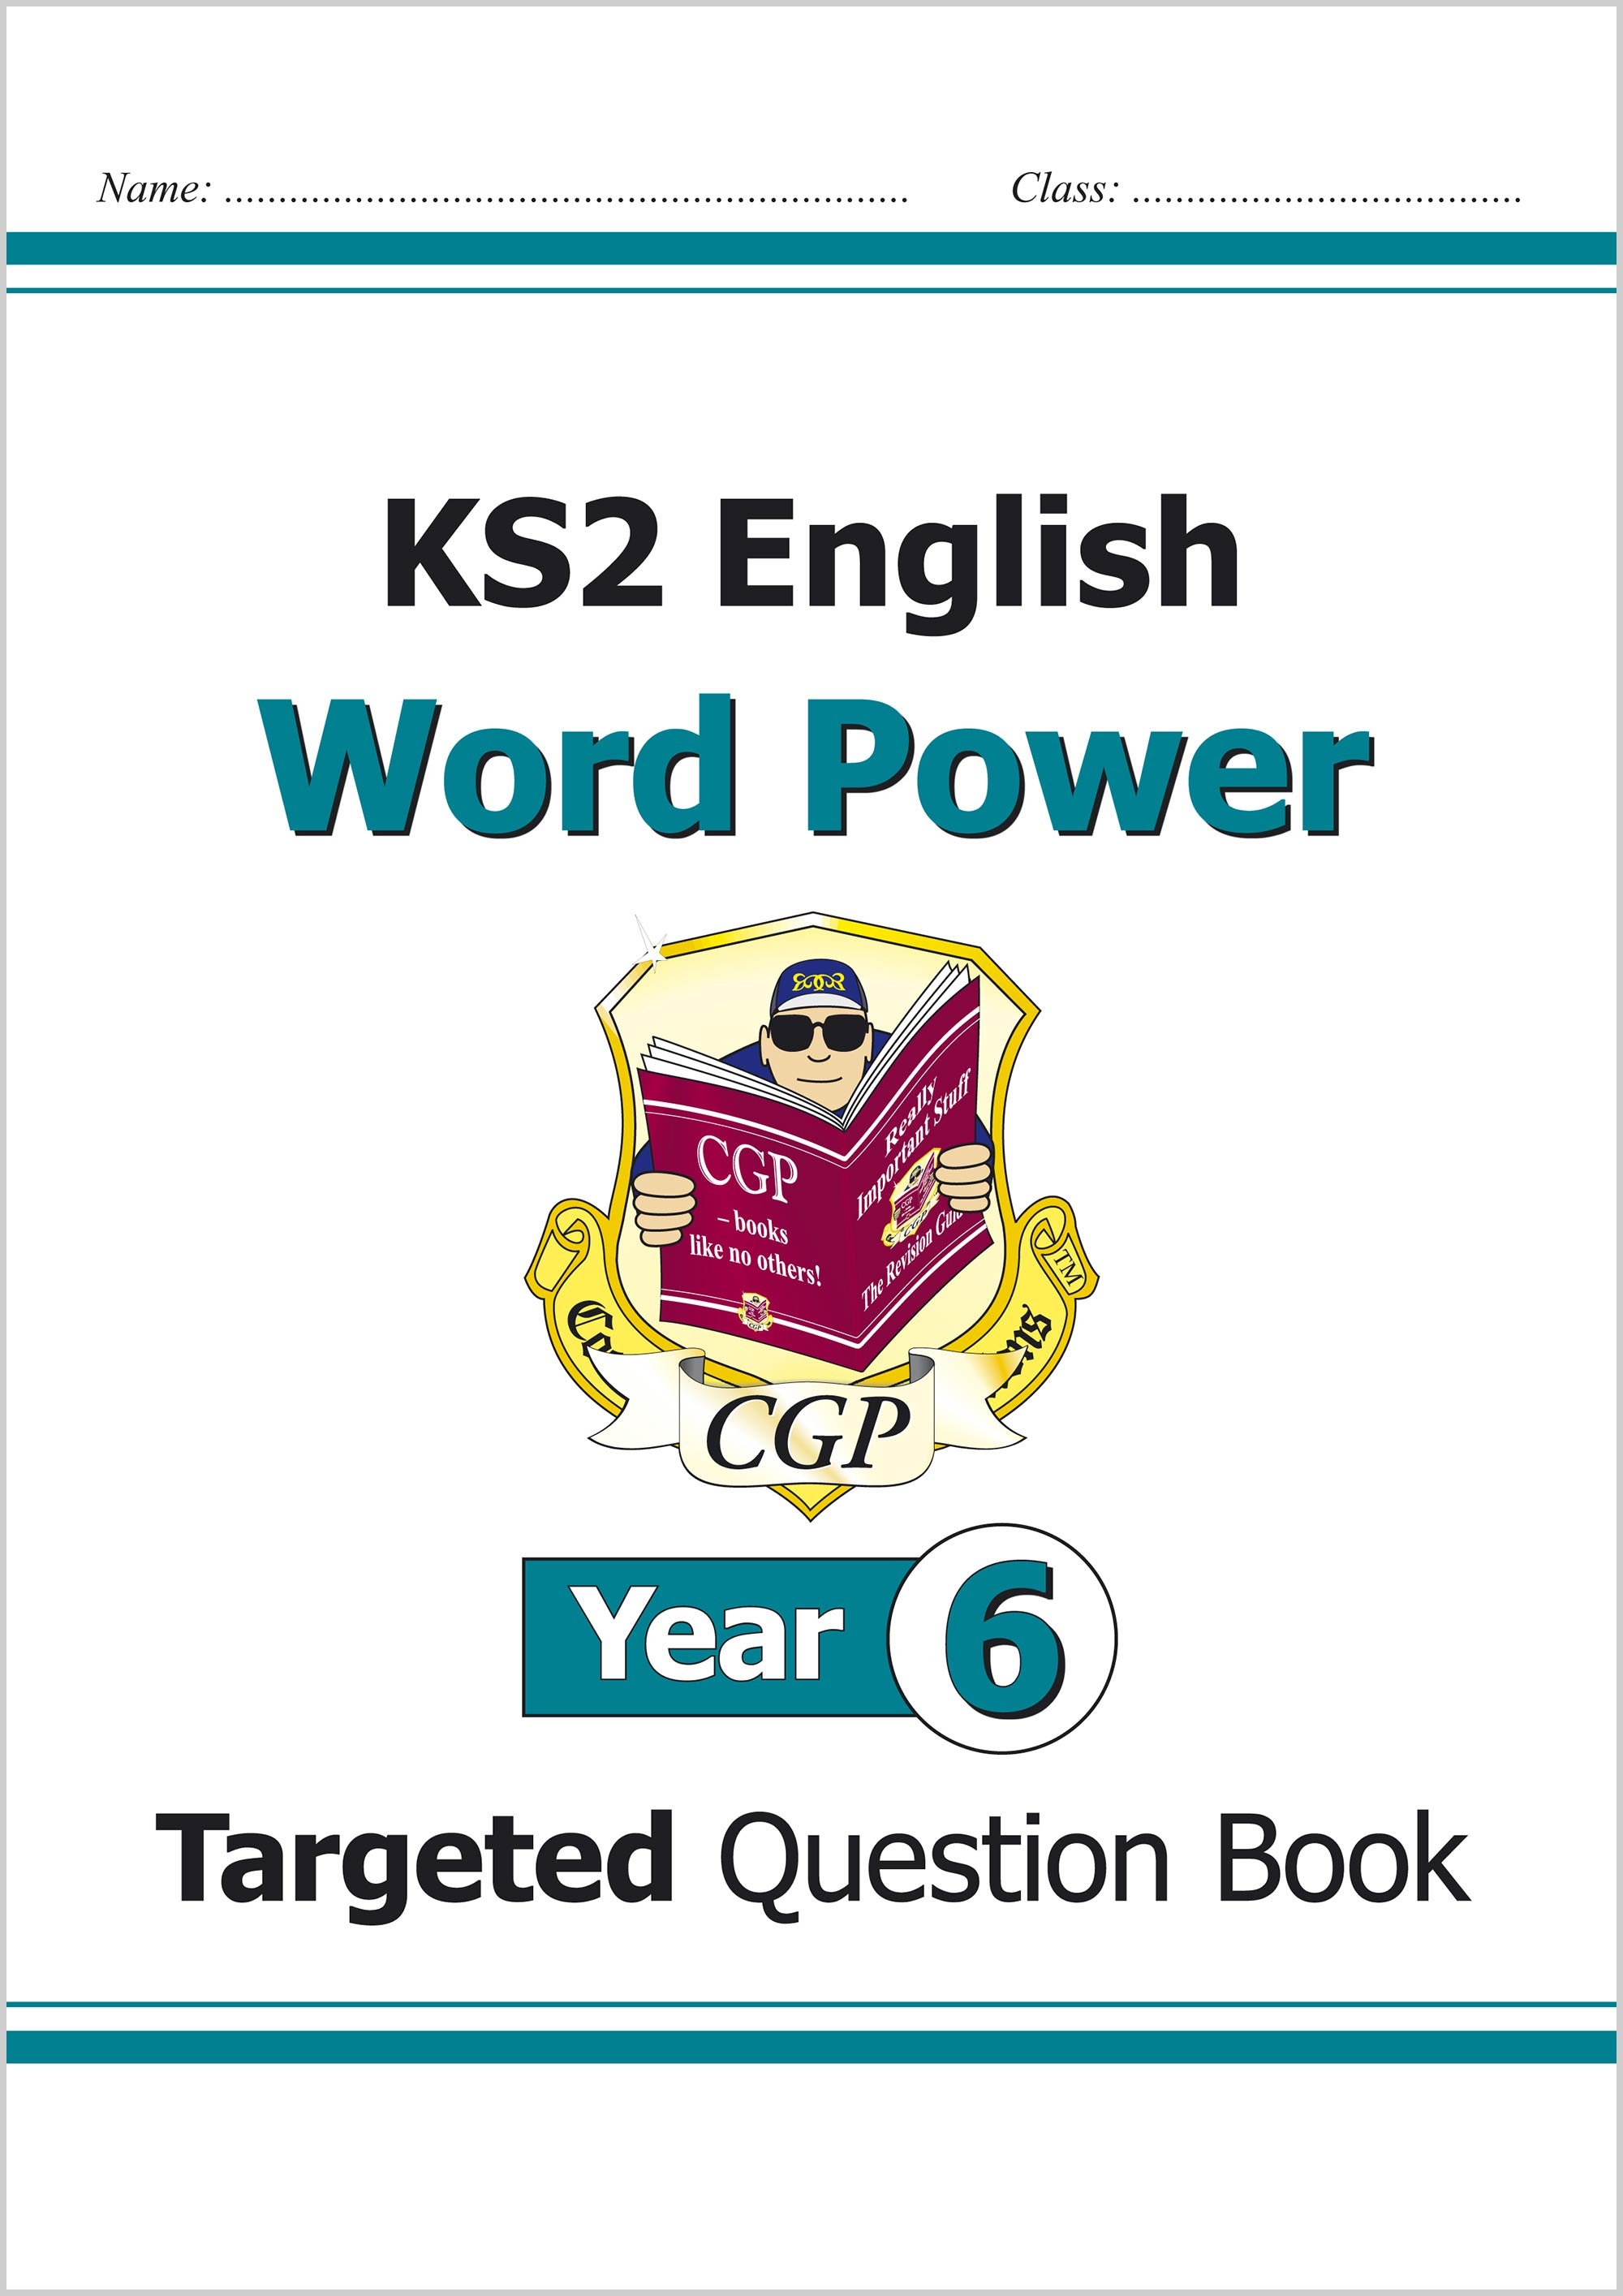 E6WPW21 - KS2 English Targeted Question Book: Word Power - Year 6